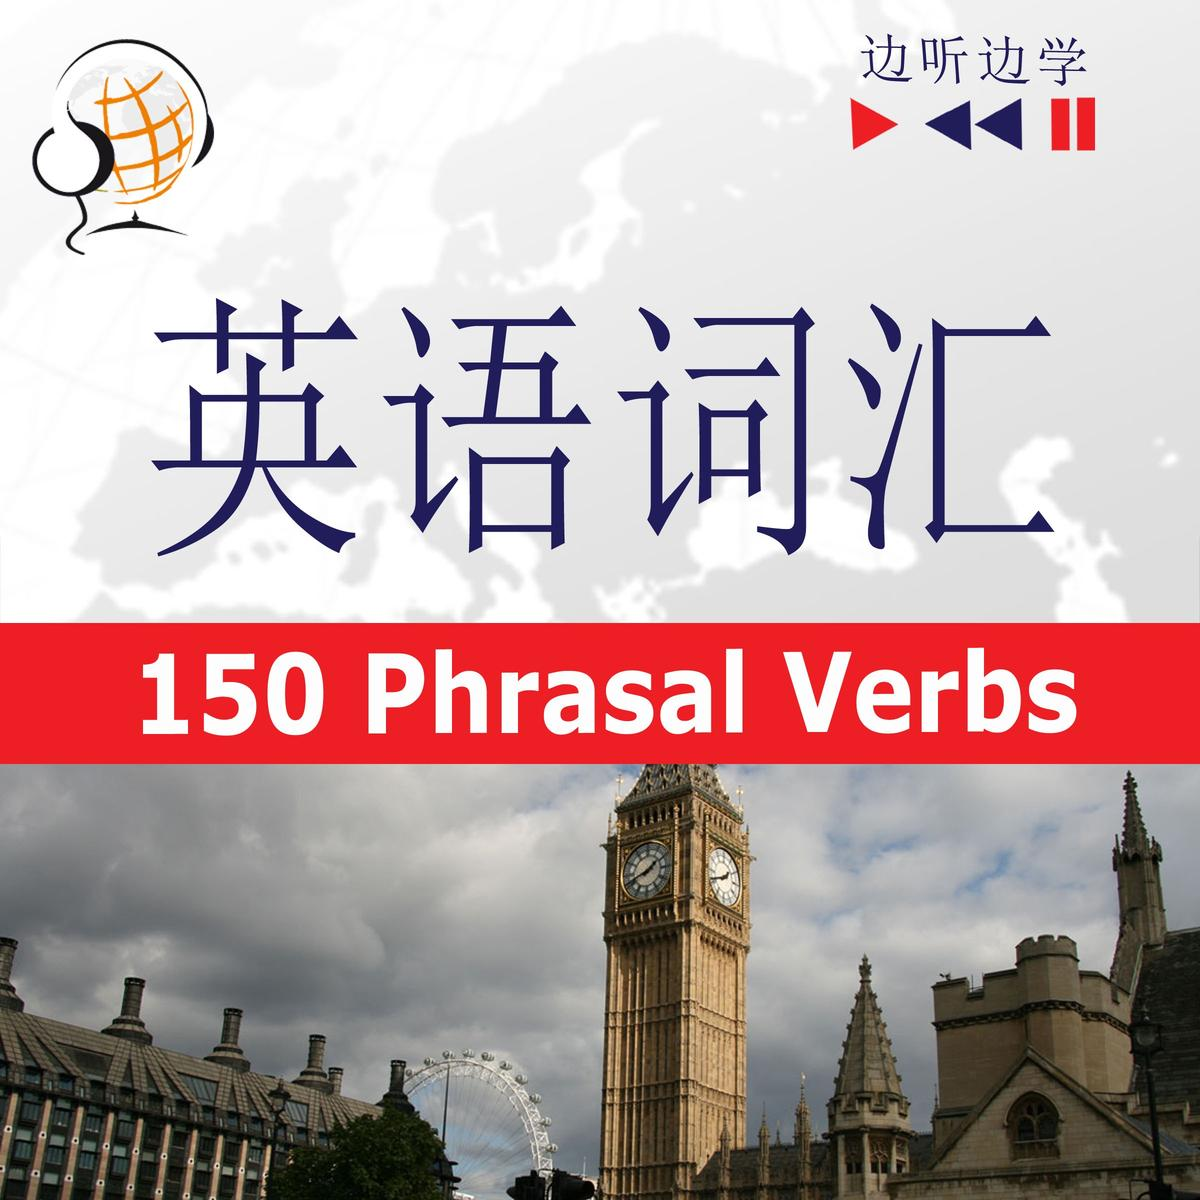 English Vocabulary Master for Chinese Speakers - Listen & Learn: 150 Phrasal Verbs (Proficiency Level: B2-C1) - Audiobook